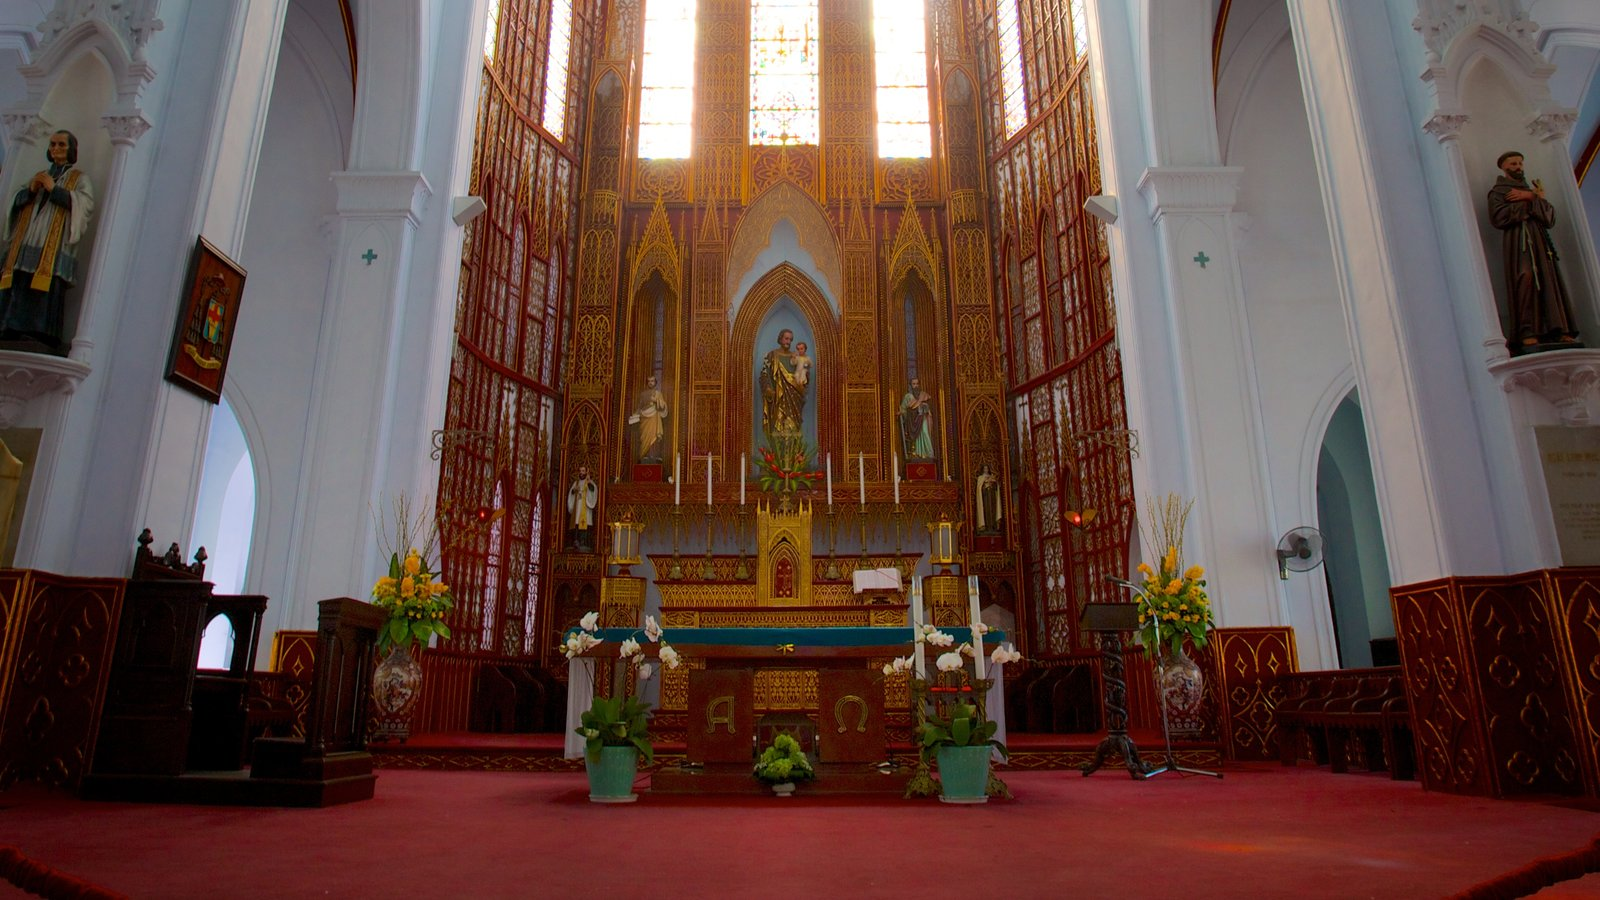 St. Joseph Cathedral featuring a church or cathedral and interior views